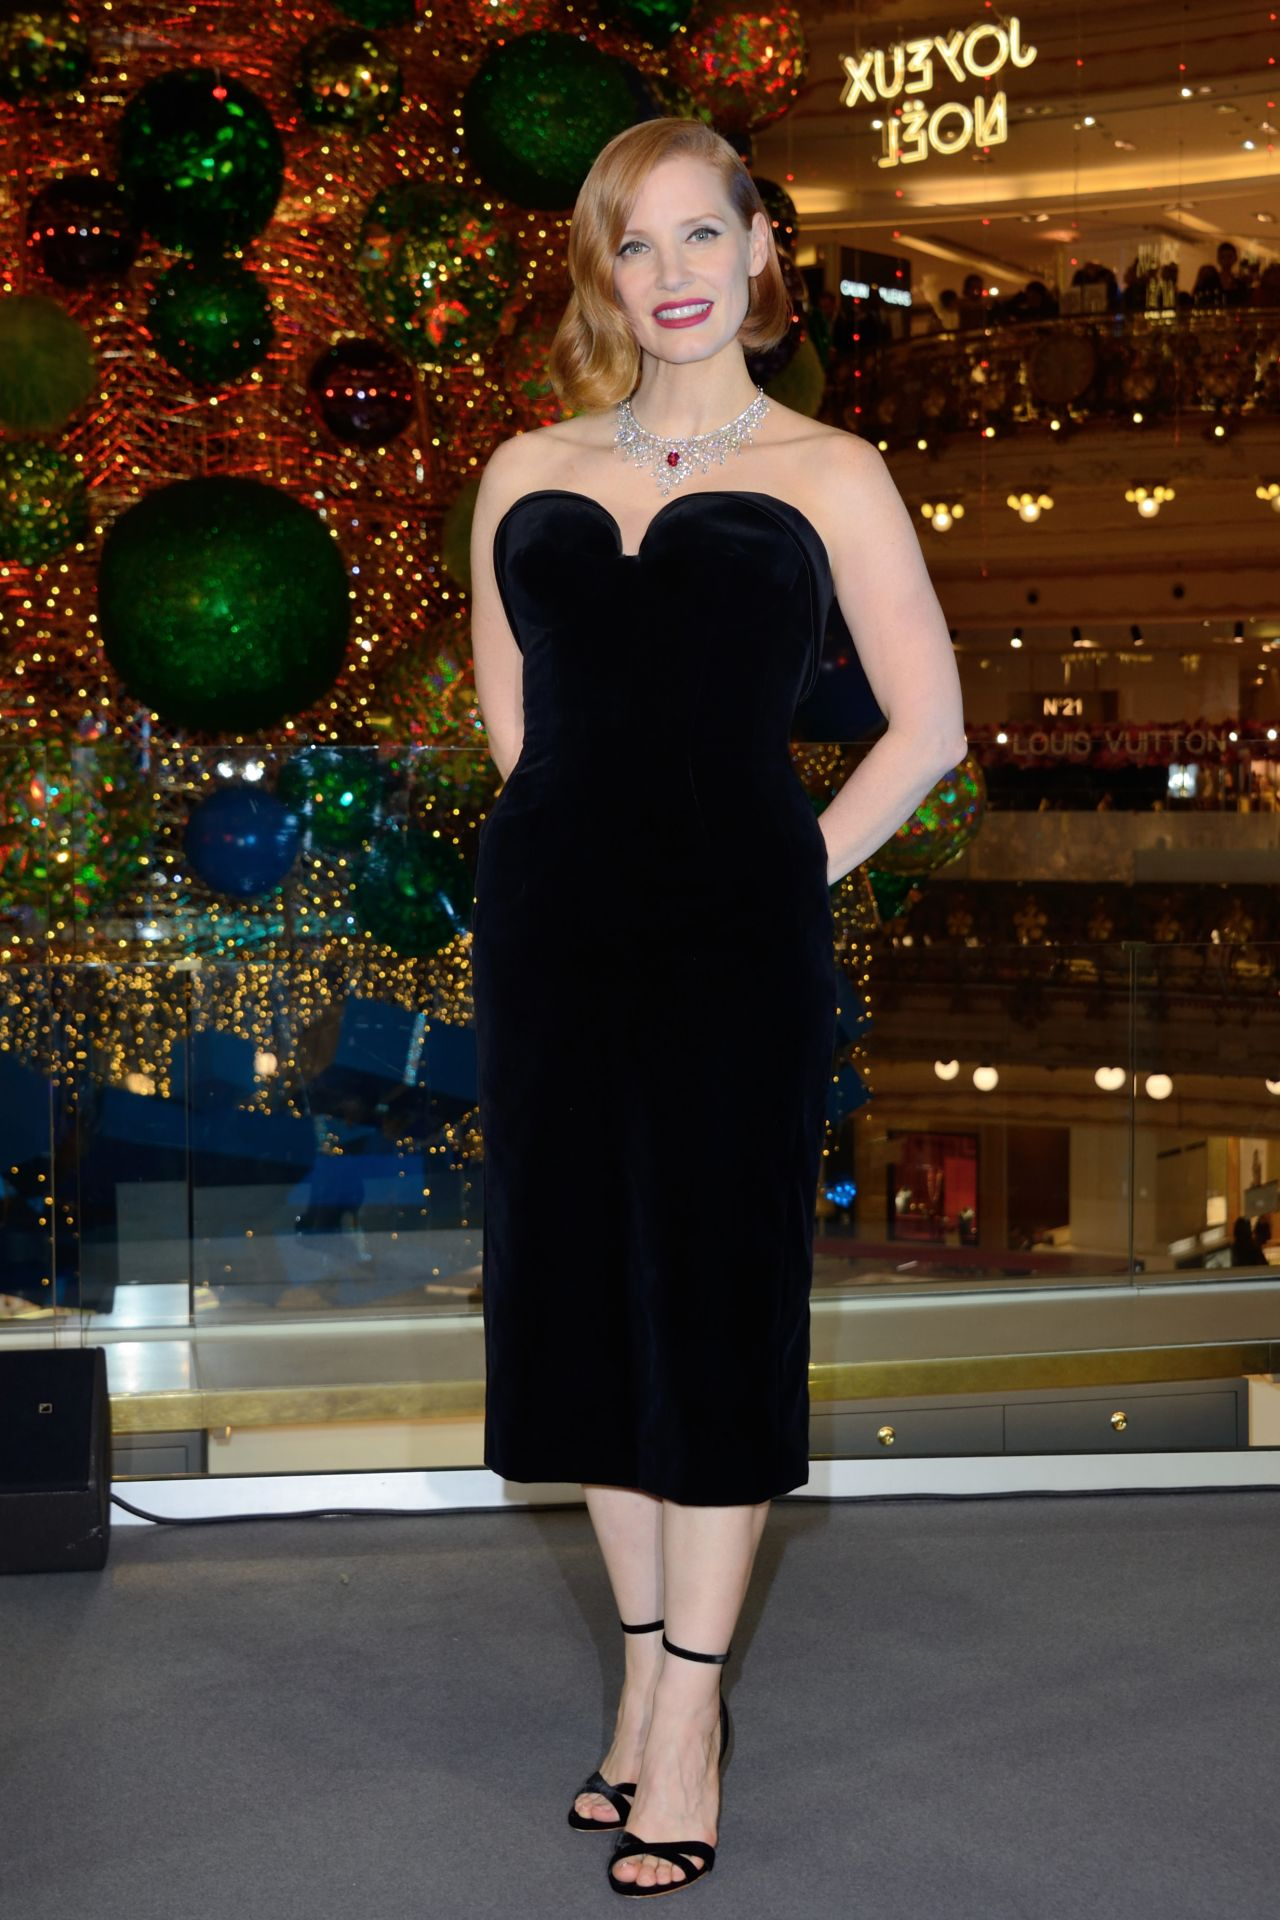 https://celebmafia.com/wp-content/uploads/2018/11/jessica-chastain-at-the-les-galeries-lafayette-christmas-decorations-inauguration-in-paris-11-07-2018-9.jpg